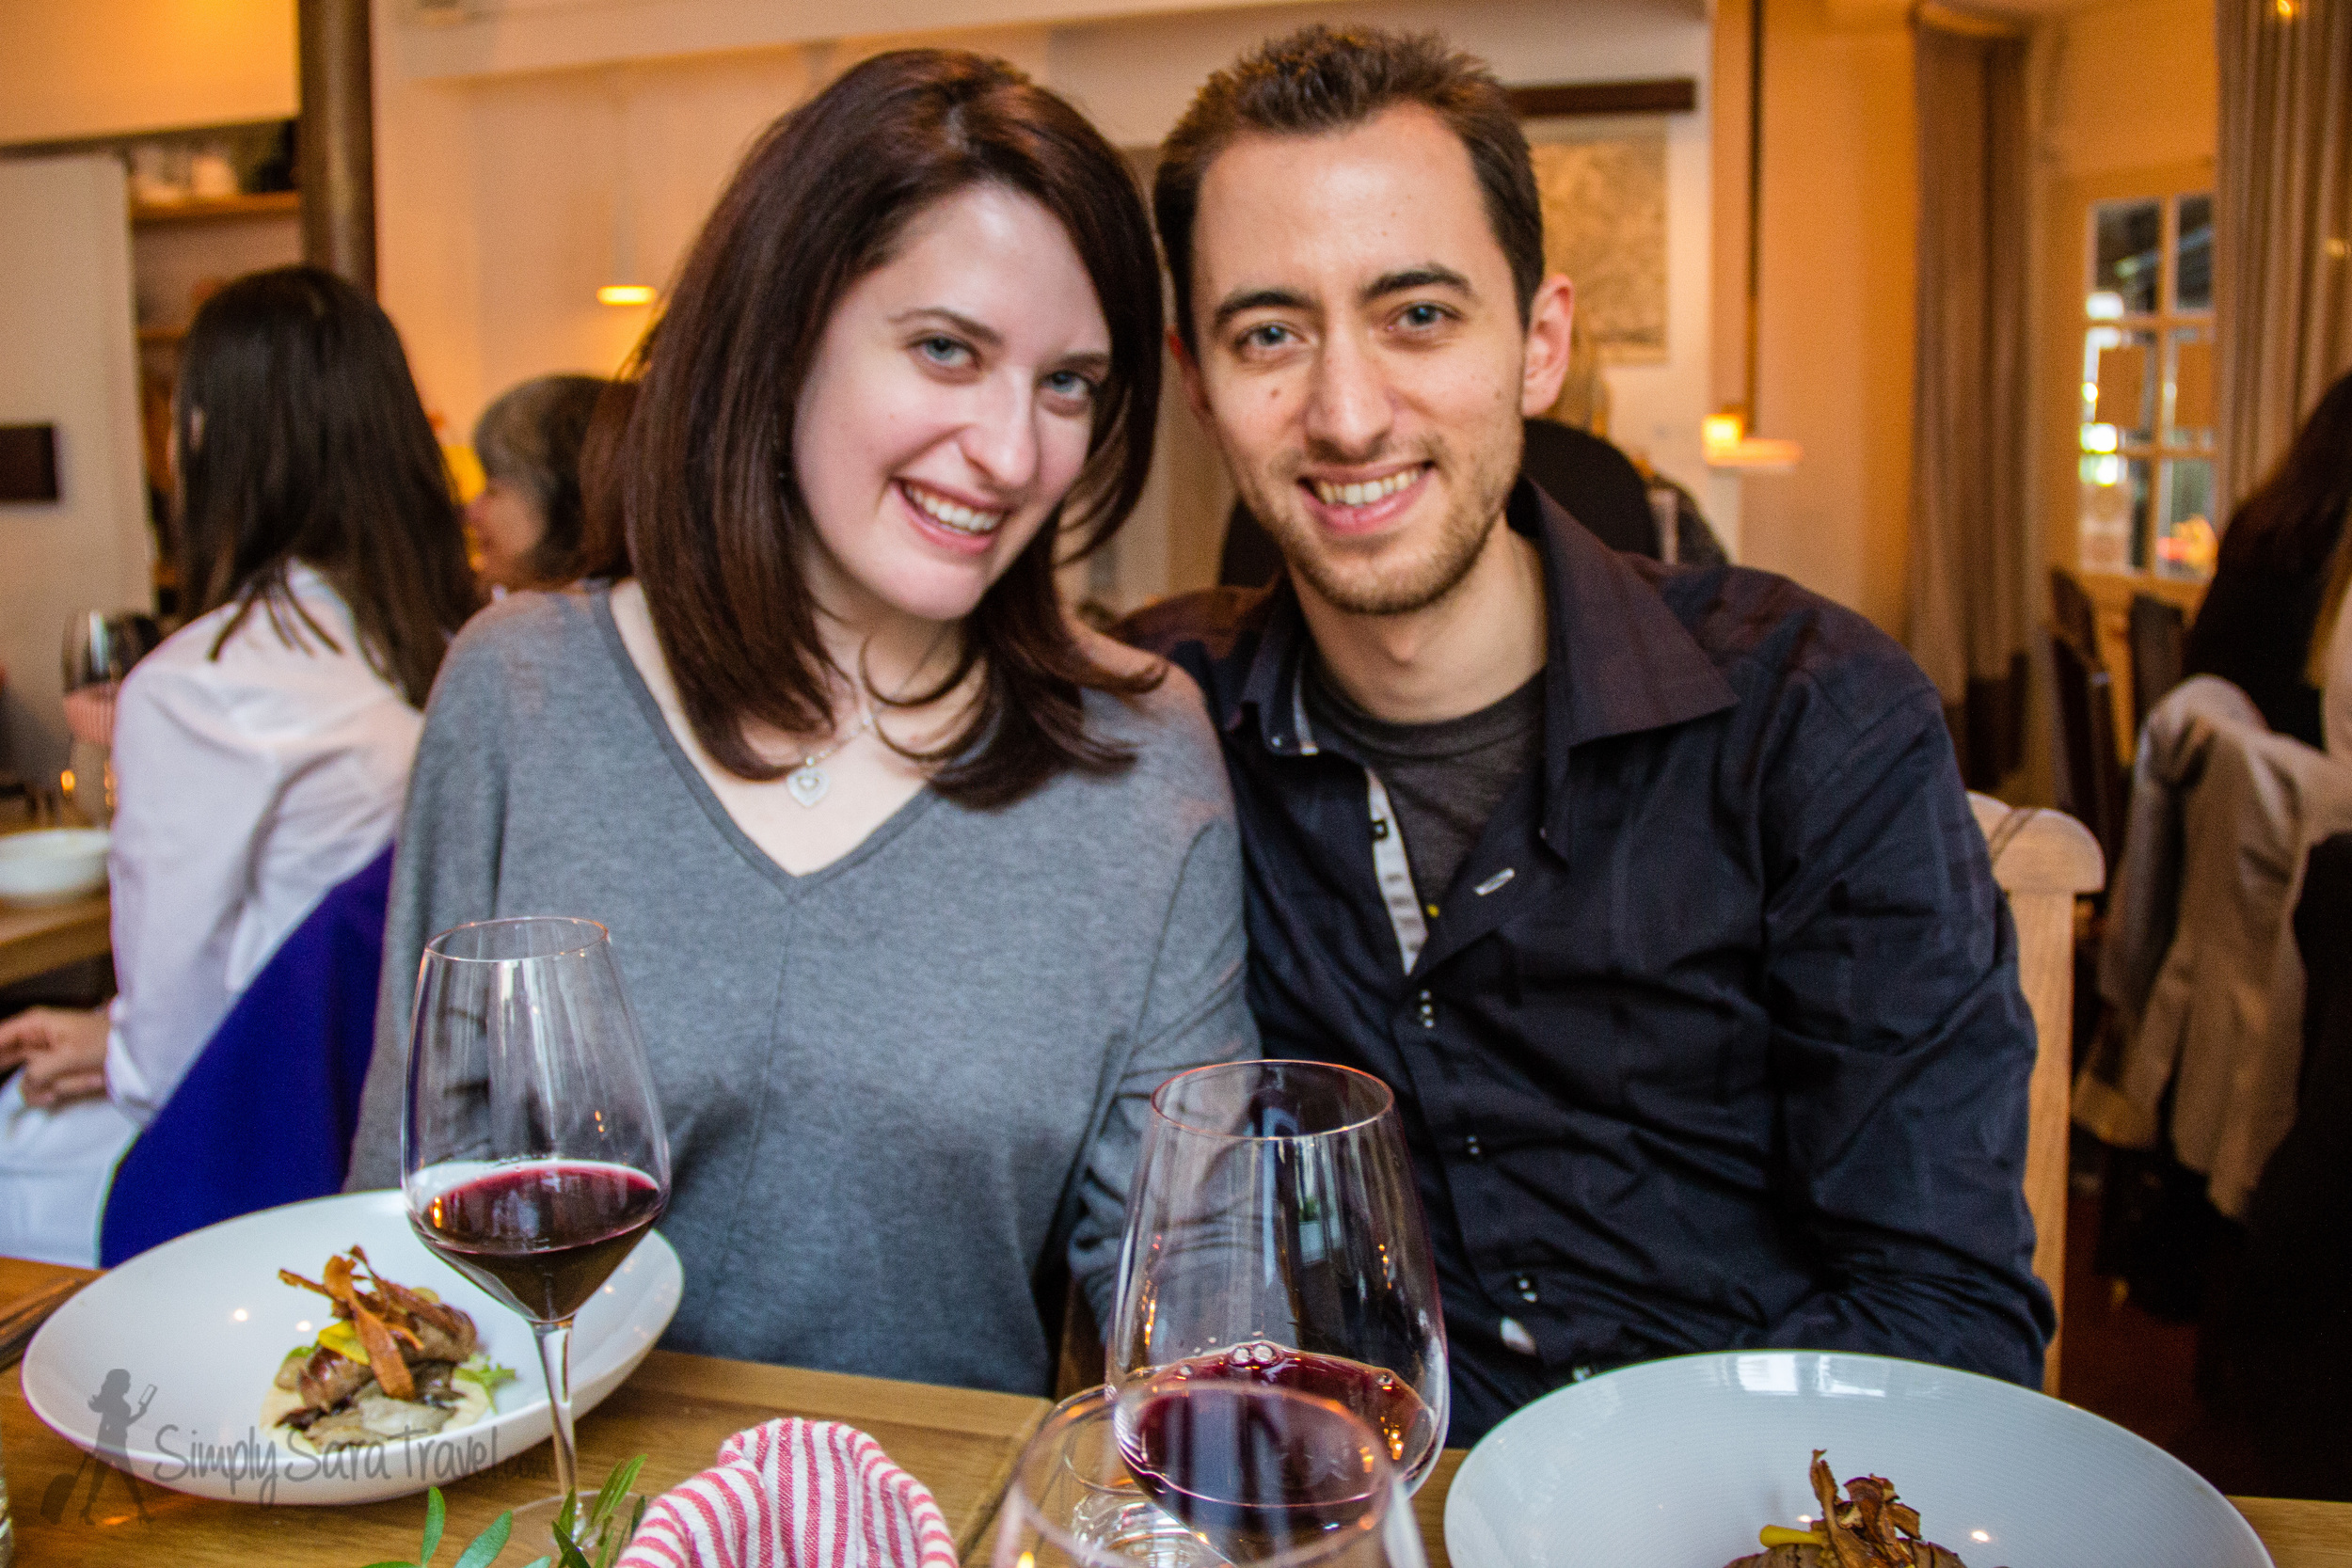 Dinner at  Verjus  is reserved for special occasions - the tasting menu is just under 70 euros per person. But it is always incredible, and who better to share it with than my foodie little brother?